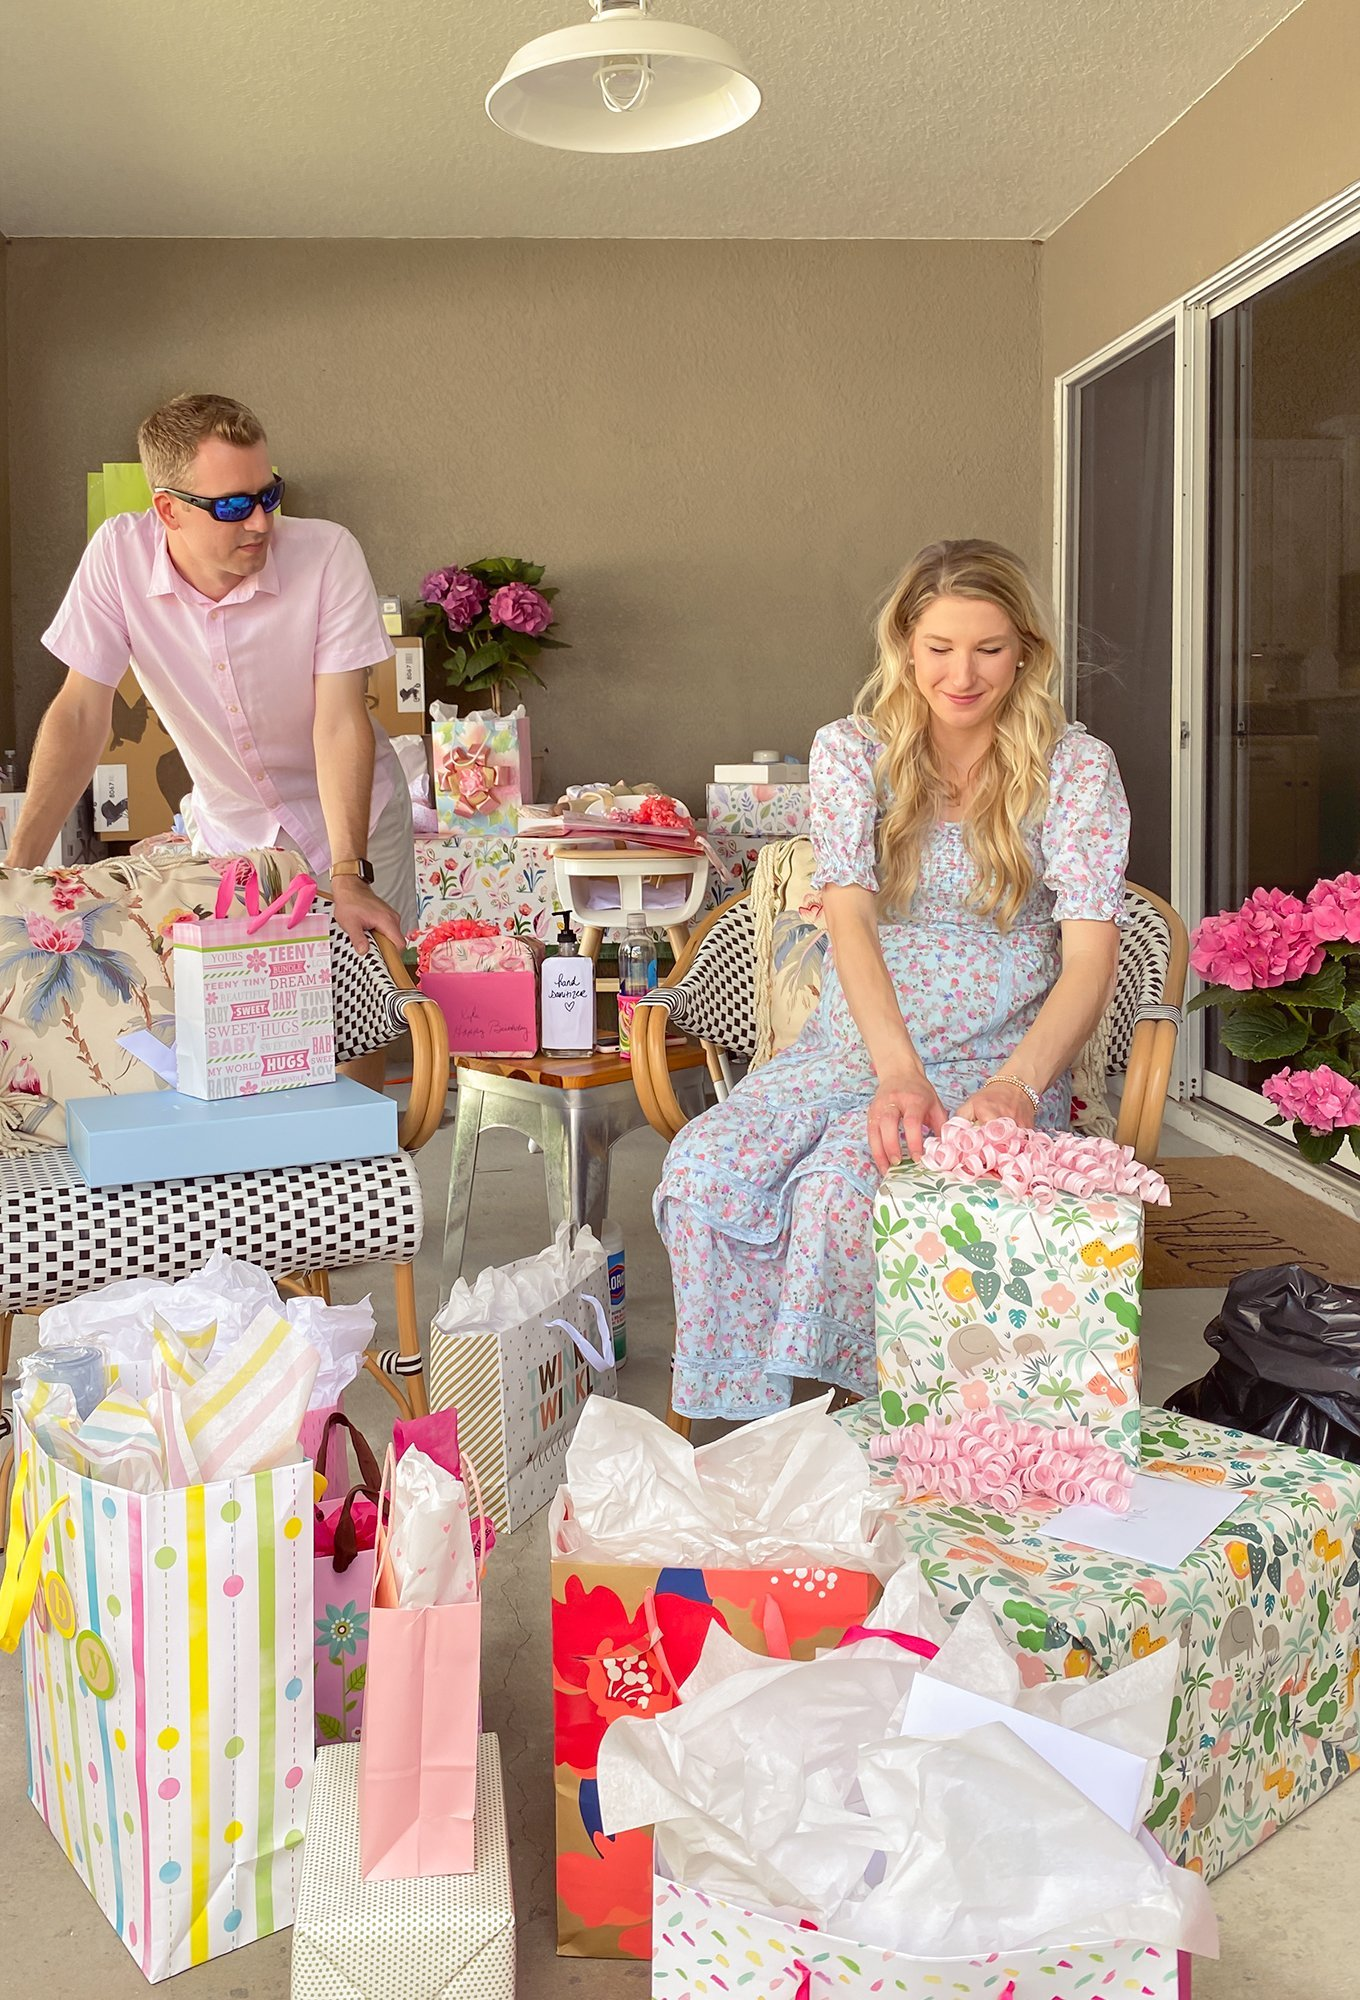 Social distancing baby shower